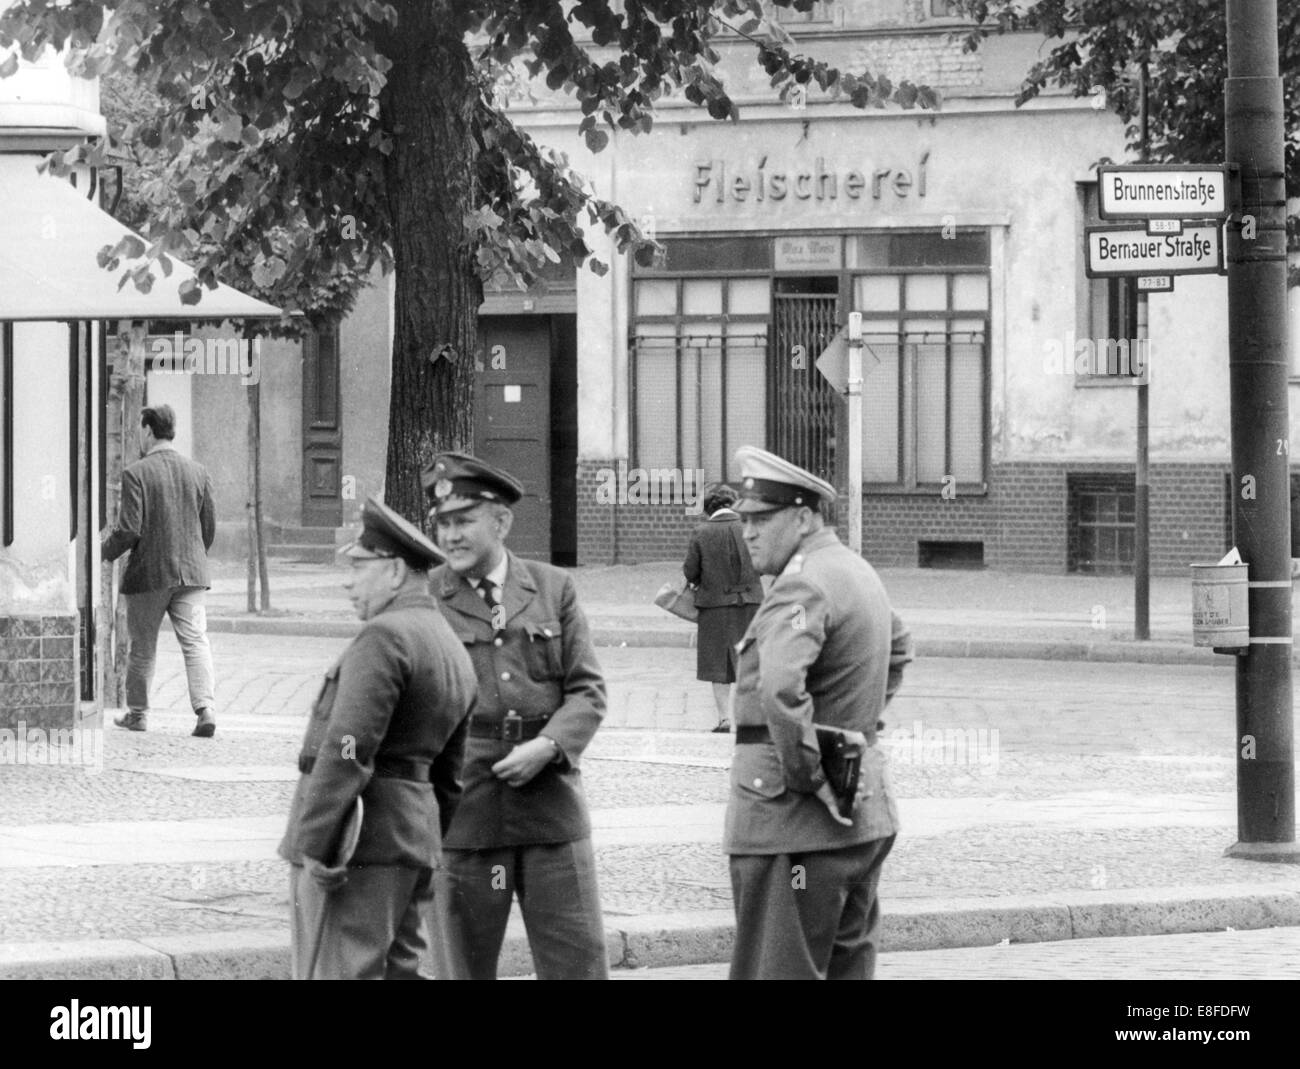 Policemen in West Berlin and customs officers not far away from a closed bucher's shop in Bernauer Street in Berlin, 7 July 1961. The shop belongs to East Berlin, the Western part of the city begins from the pavement in front of the shop. From 13 August 1961, the day of the building of the Berlin Wall, until the fall of the Berlin Wall on 9 November 1989, the Federal Republic of Germany and the GDR were separated by the Iron Curtain between West and East. Stock Photo